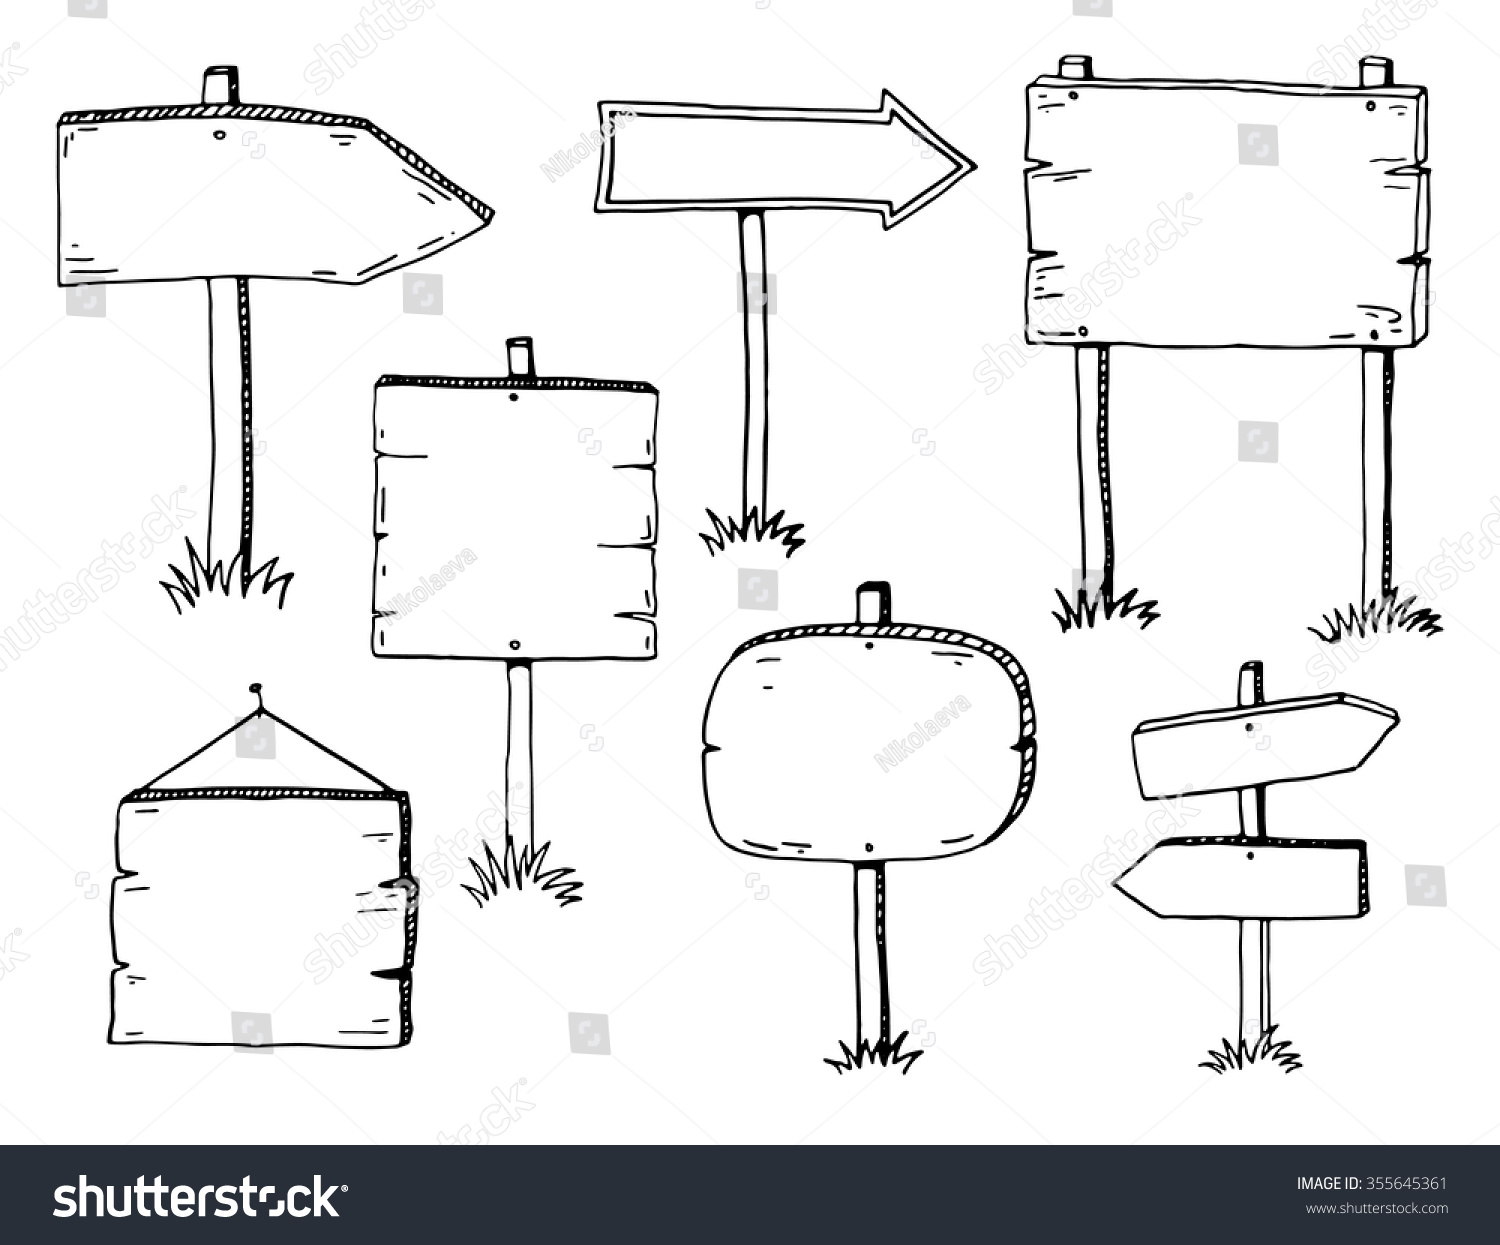 Hand drawn doodle wood signs and arrows set #355645361